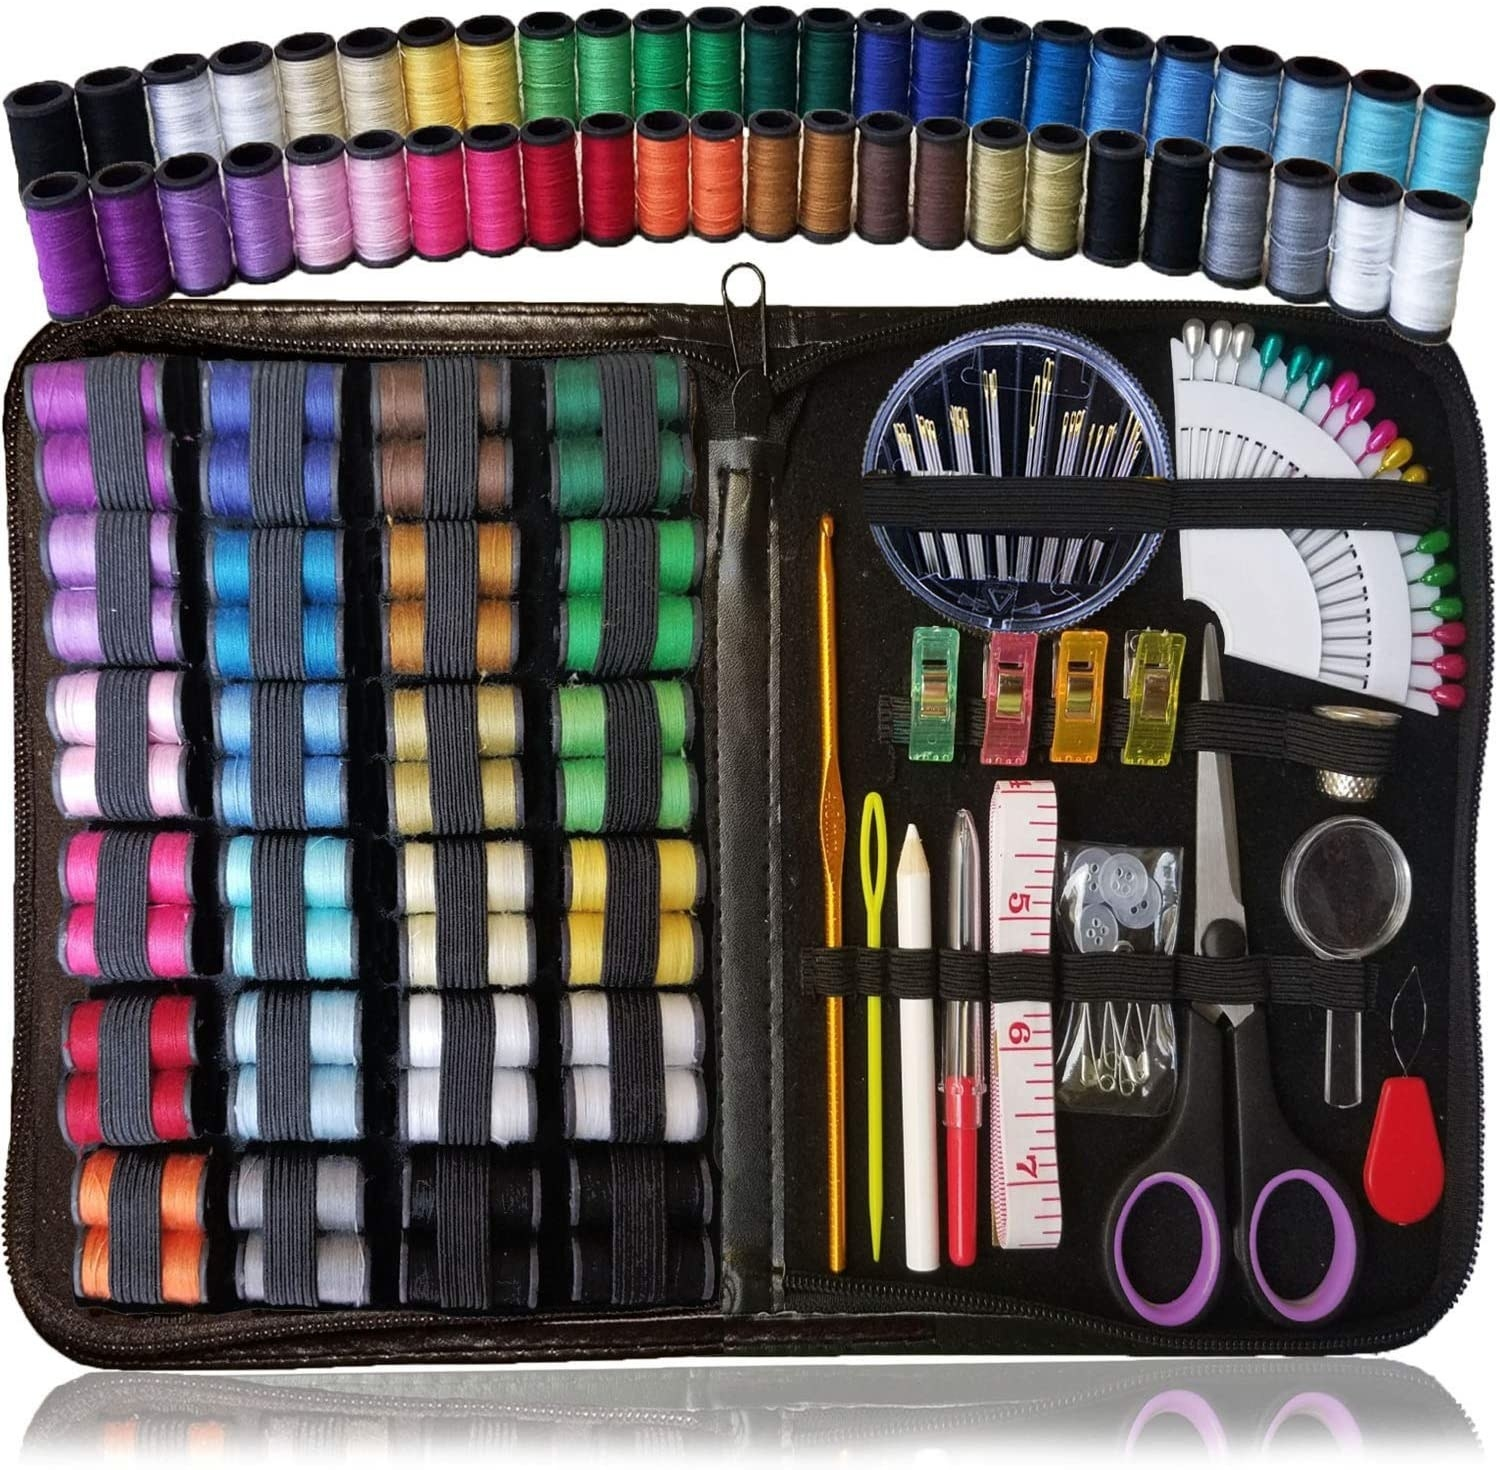 The sewing kit is laid open to show all the threads, scissors, seam rippers, pins, and scissors included in it